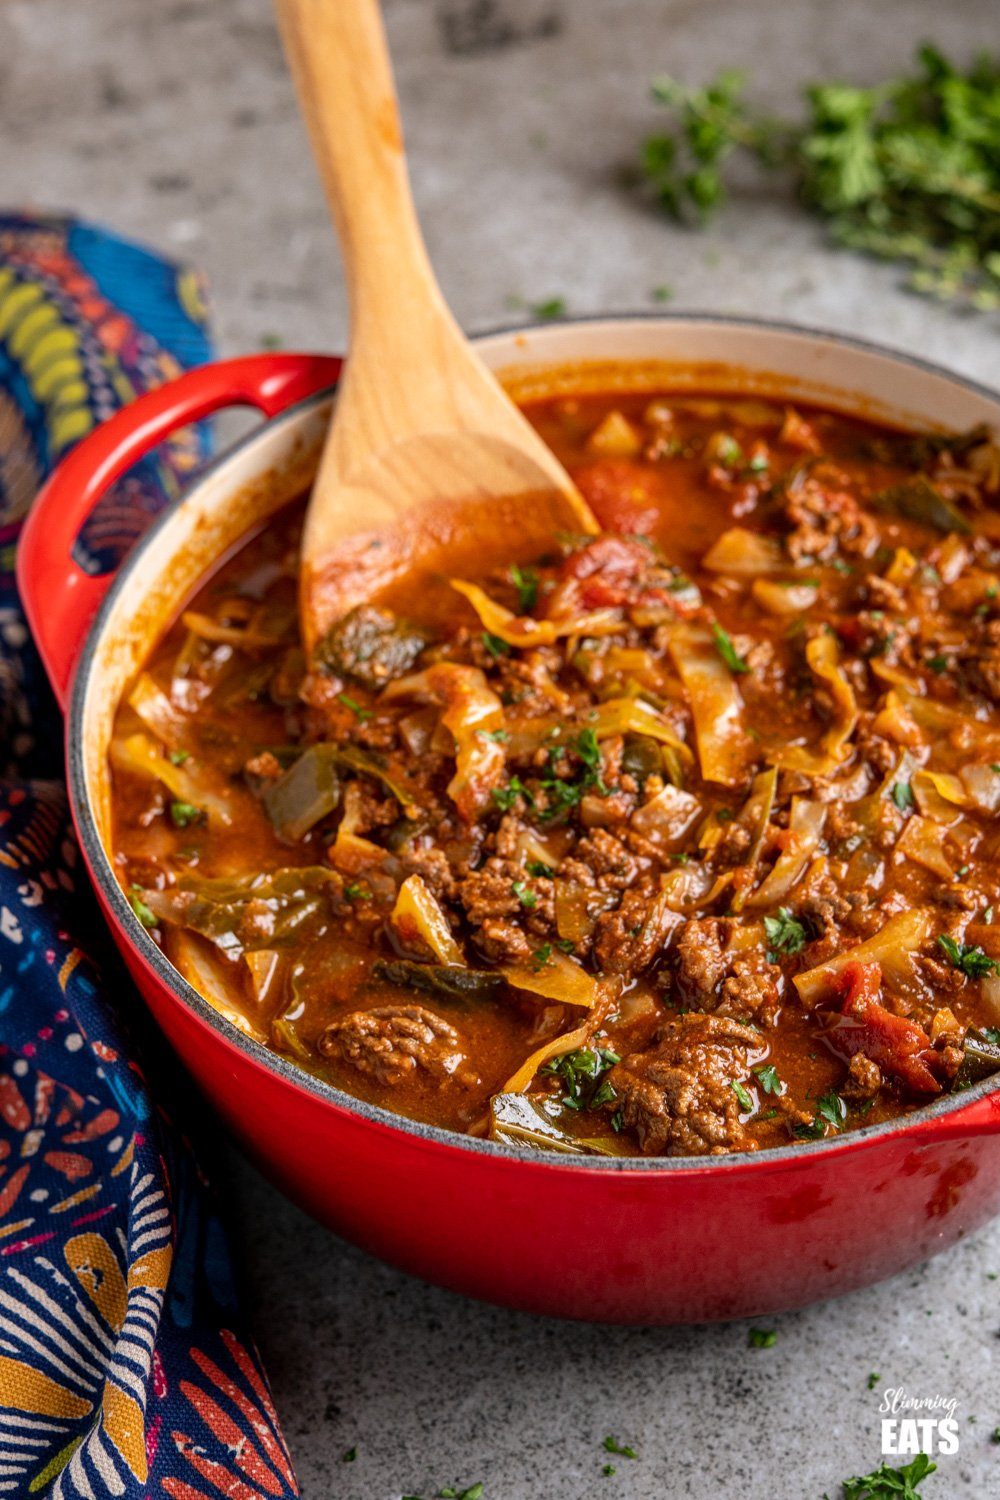 Beef and Cabbage Soup in cerise le creuset casserole pan with wooden spoon